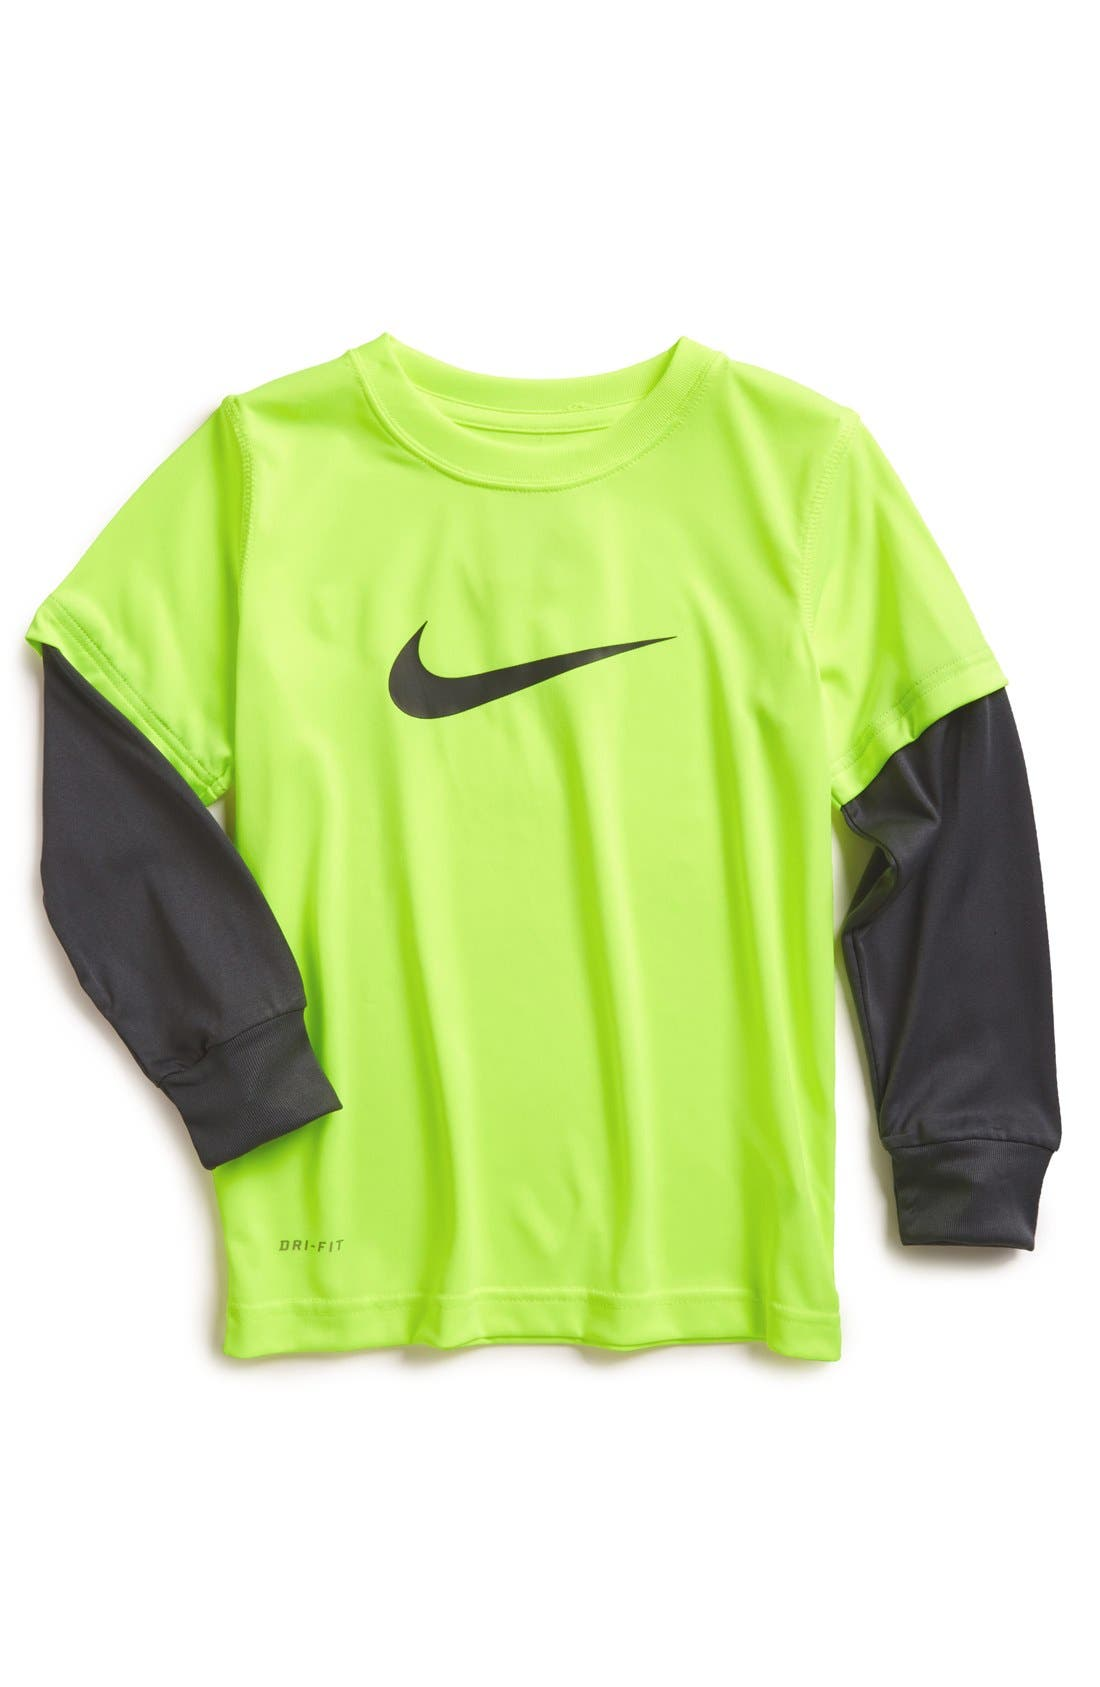 Alternate Image 1 Selected - Nike 'Legend' Layered Sleeve T-Shirt (Little Boys)